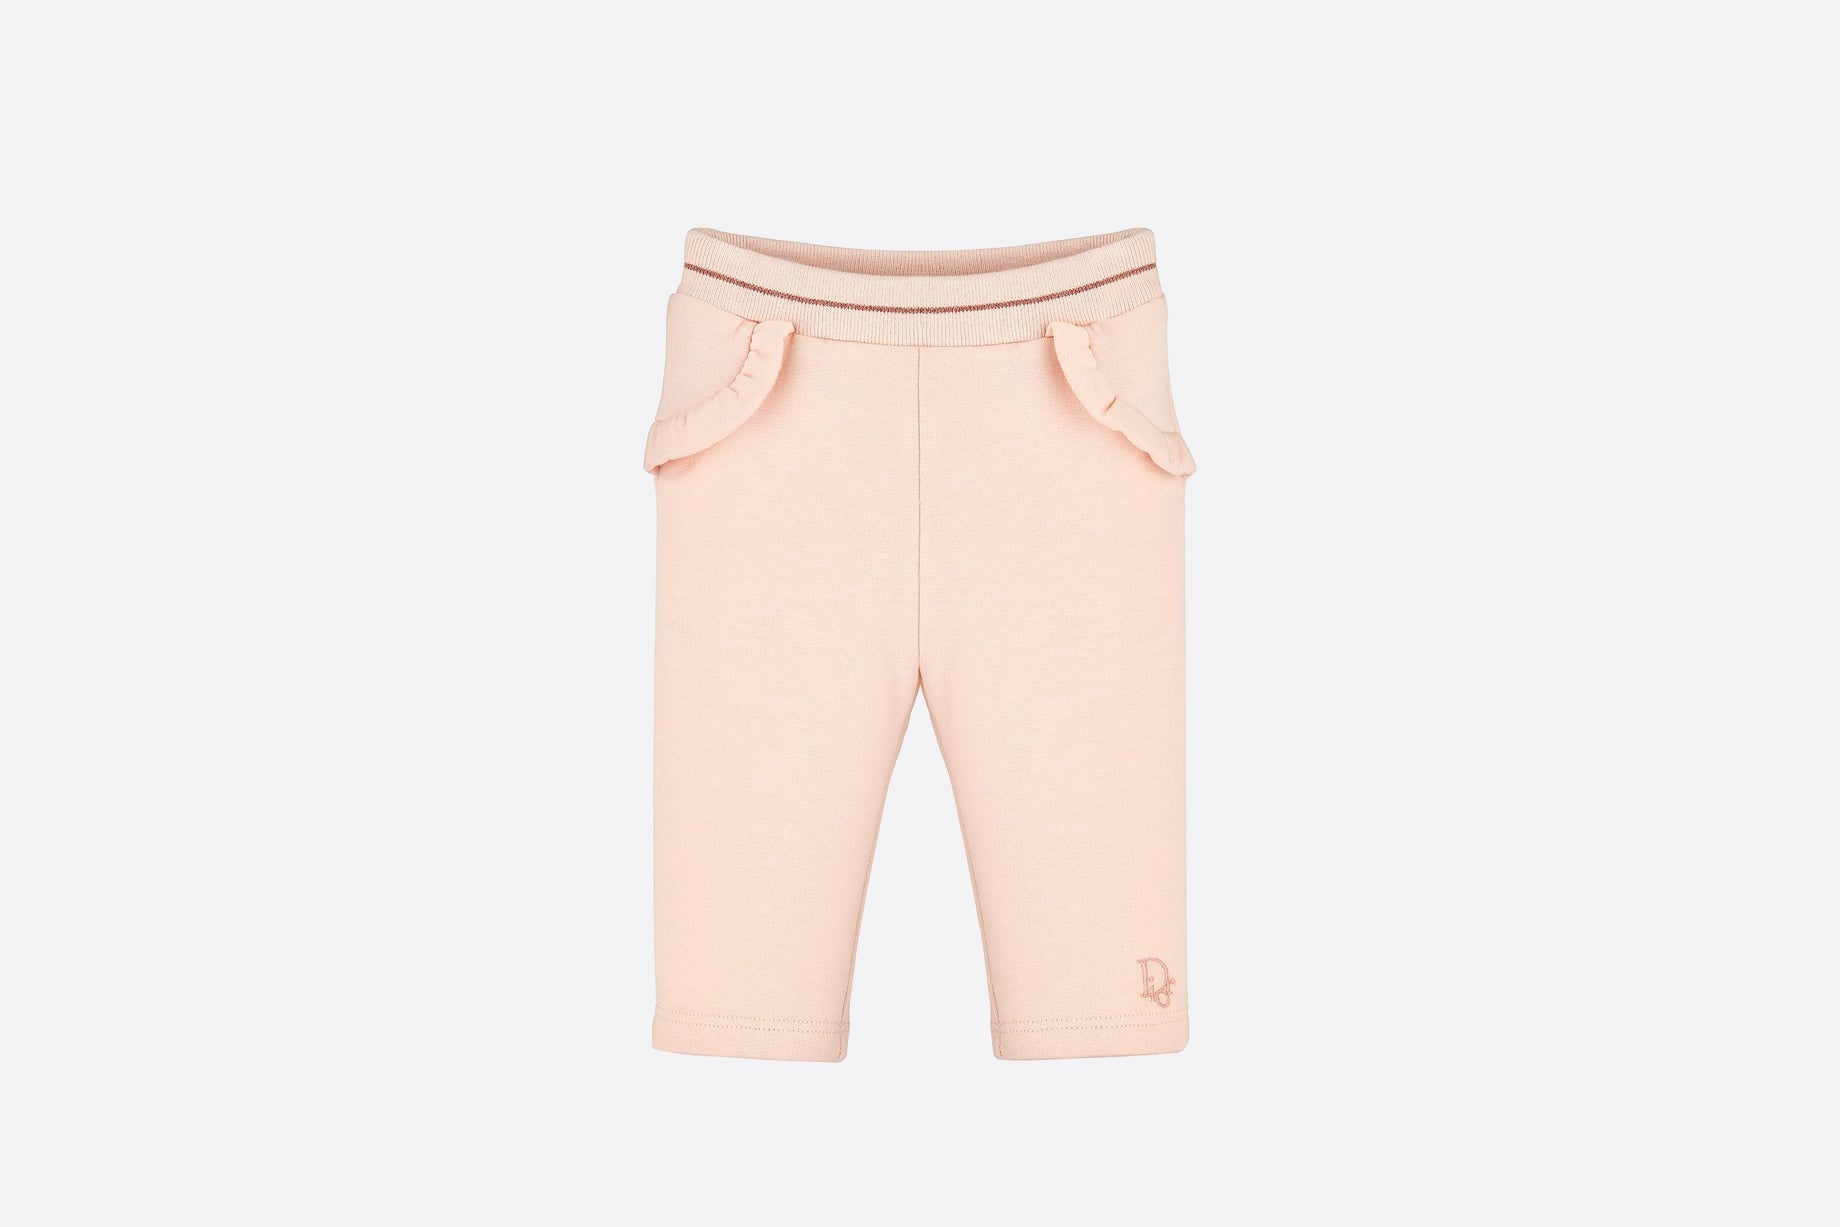 Track Pants • Pale Pink Cotton Fleece